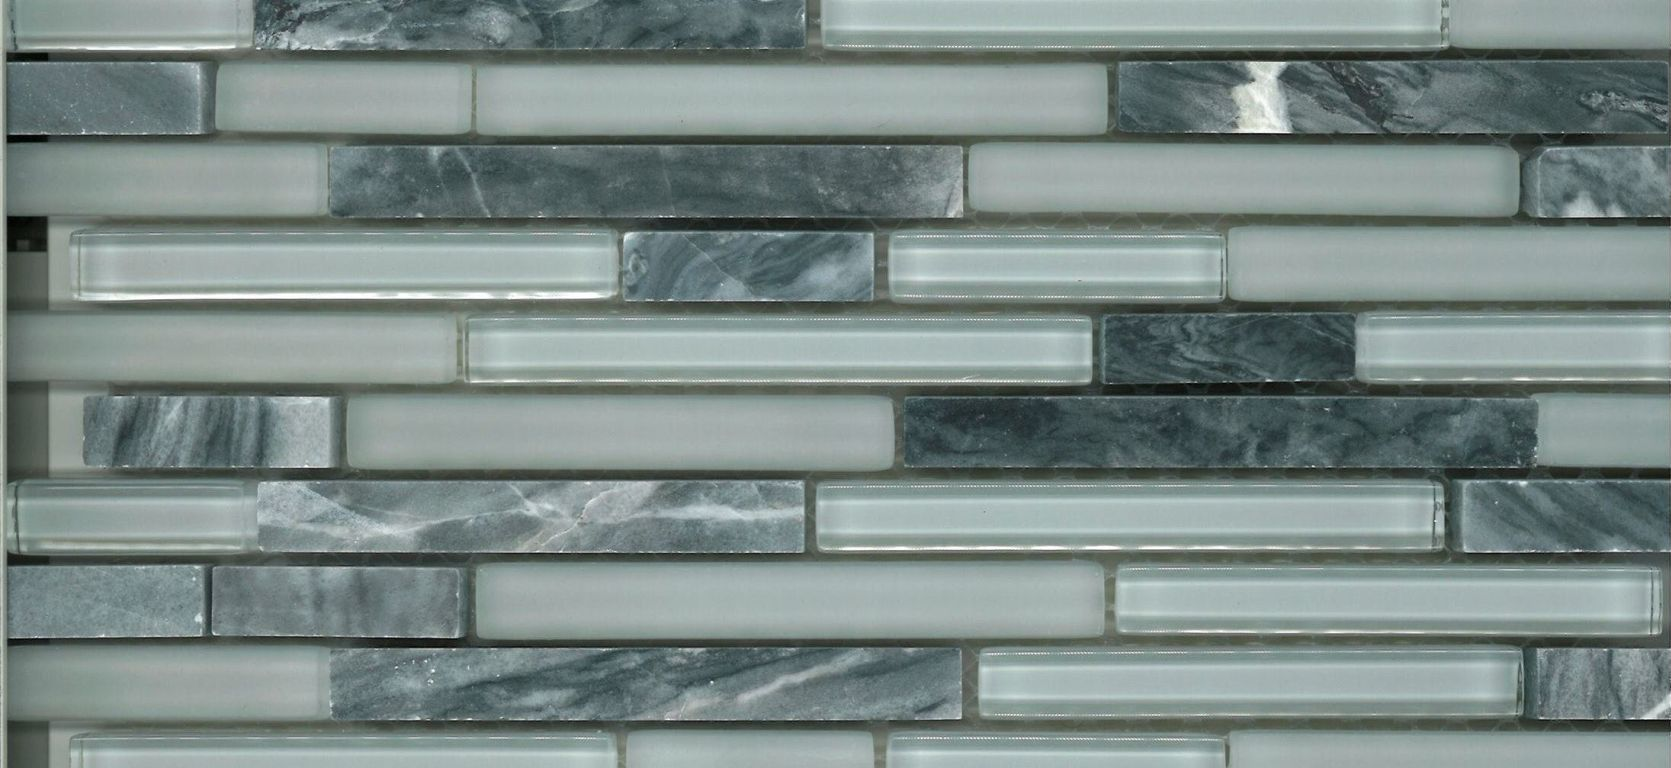 Ceramic Tile Showers | R-Anell Homes